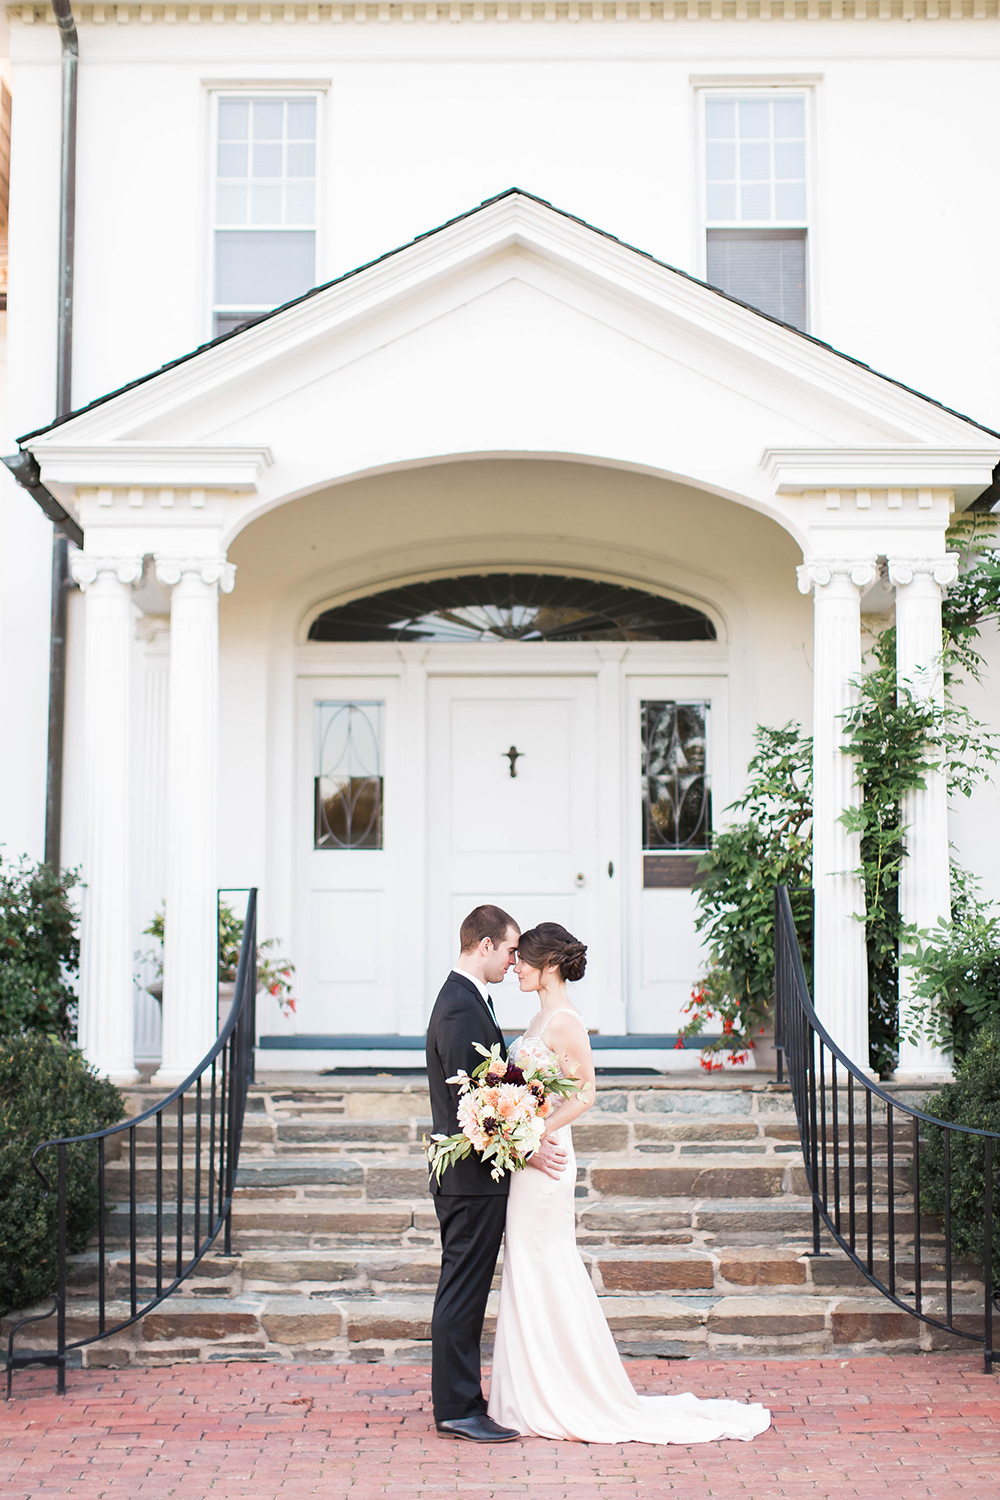 modern wedding inspiration - photo by Candice Adelle Photography http://ruffledblog.com/historic-garden-wedding-inspiration